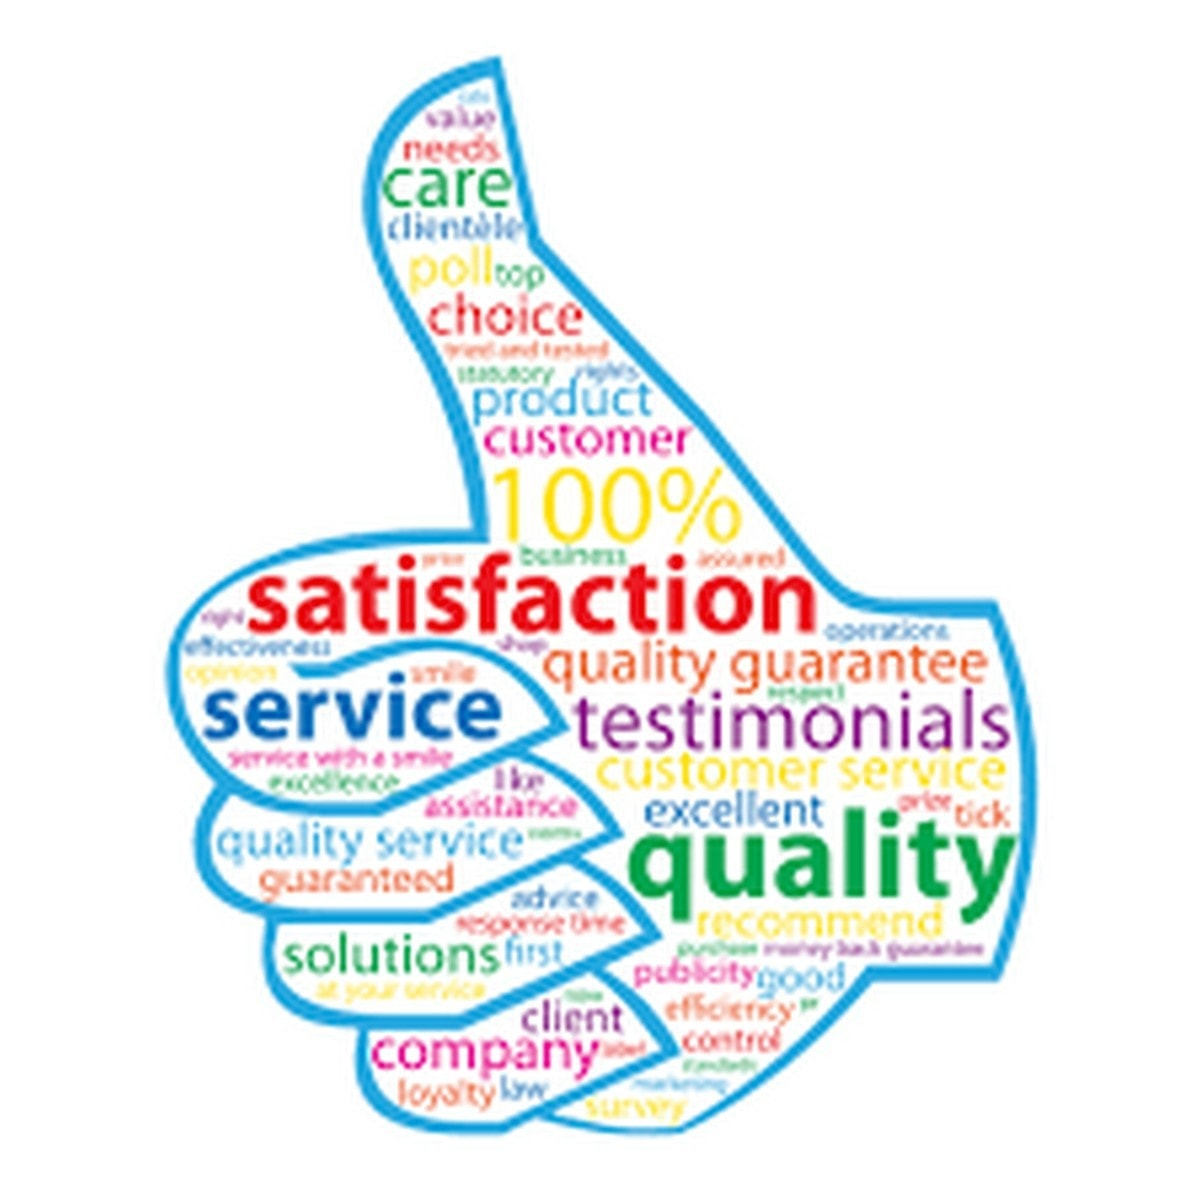 7 Amazing Advantages Of Giving Good Customer Service